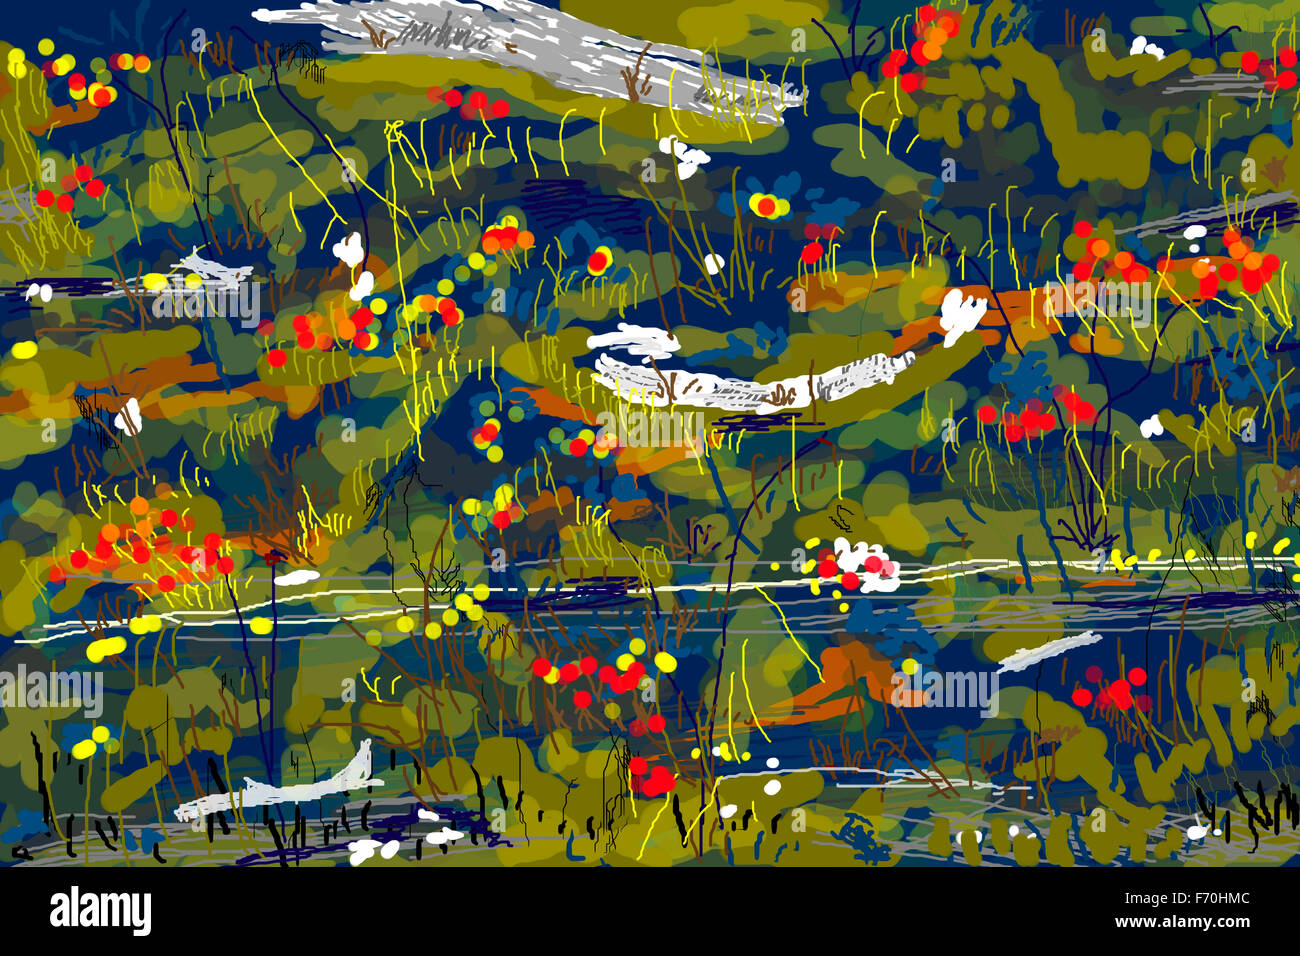 Abstract painting, india, asia - Stock Image